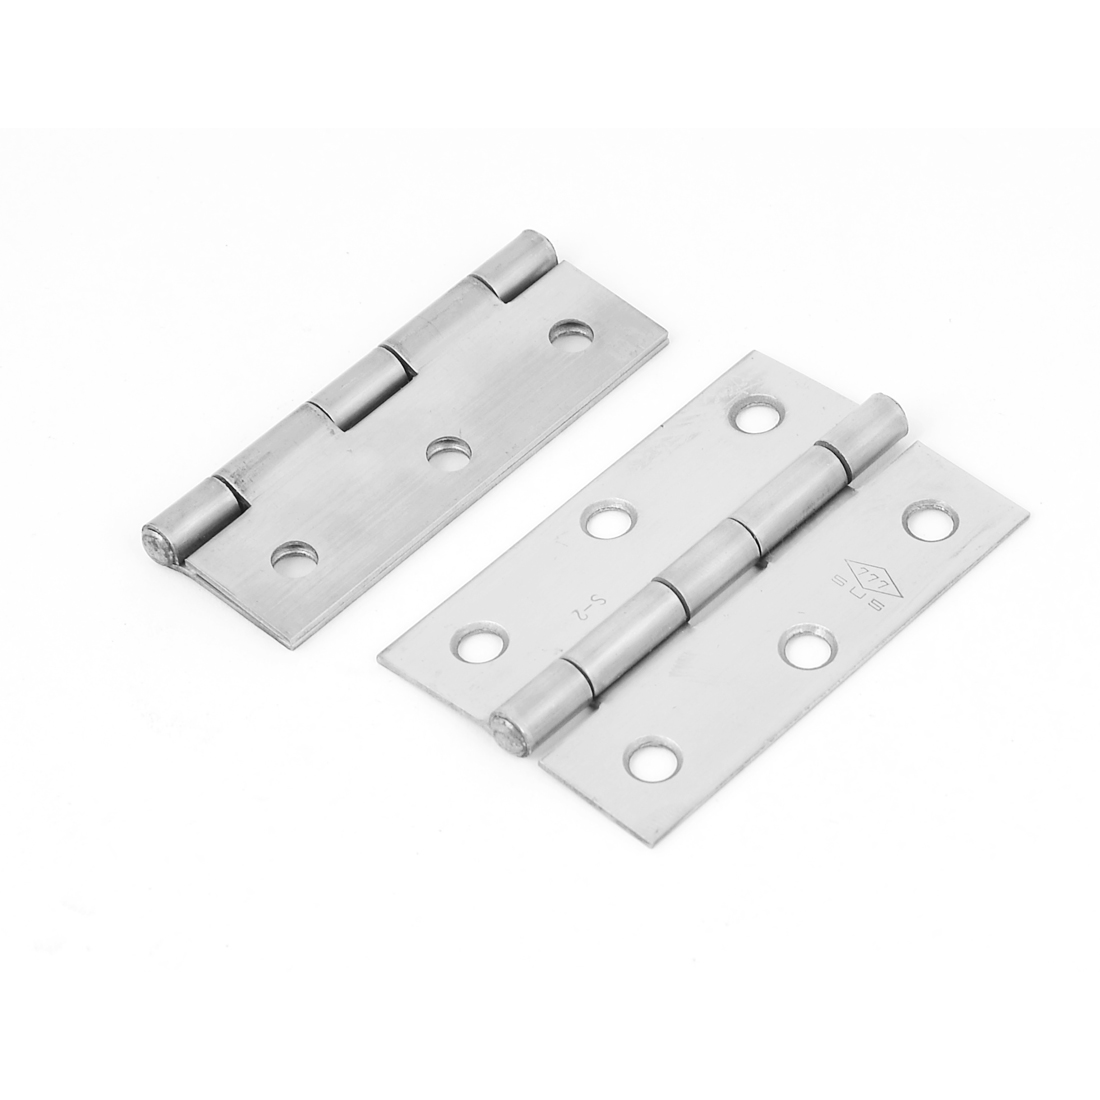 """2.5"""" Length 6 Mounting Hole Stainless Steel Cabinet Door Butt Hinge 2pcs"""